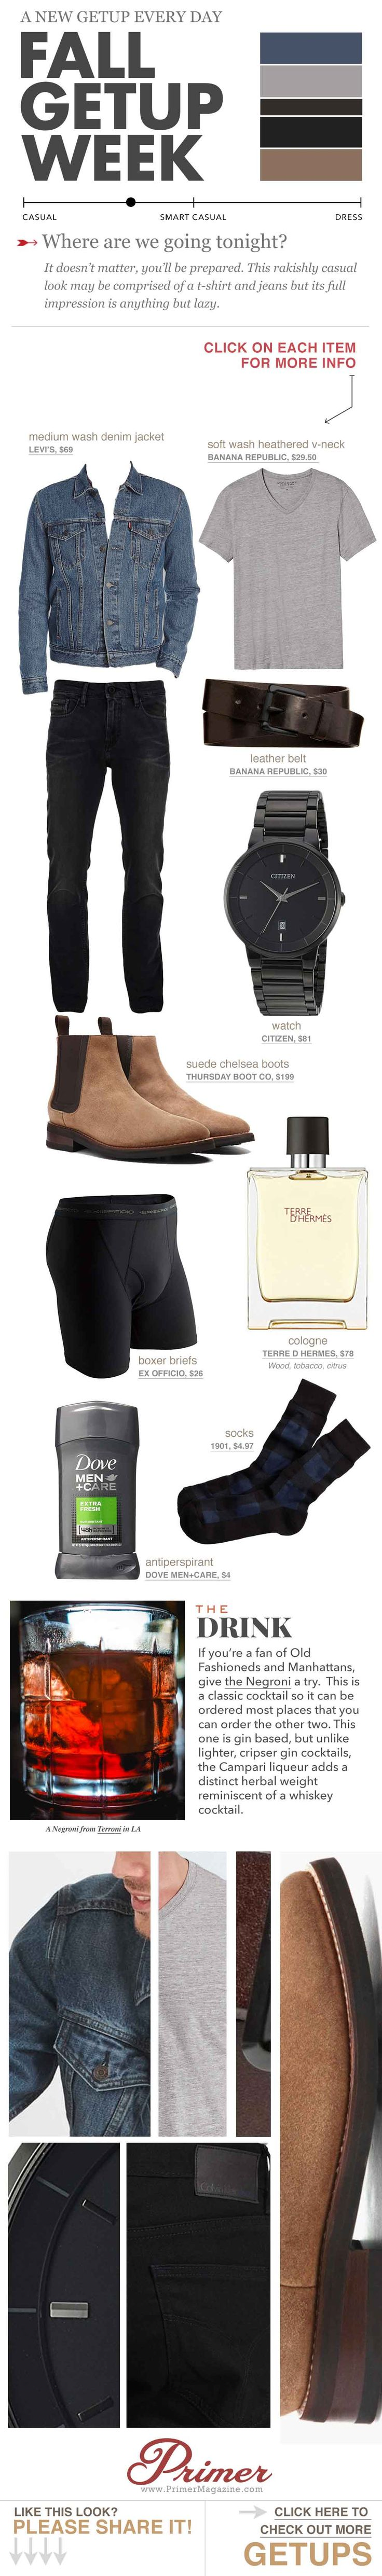 men's fall fashion what to wear when going out inspiration